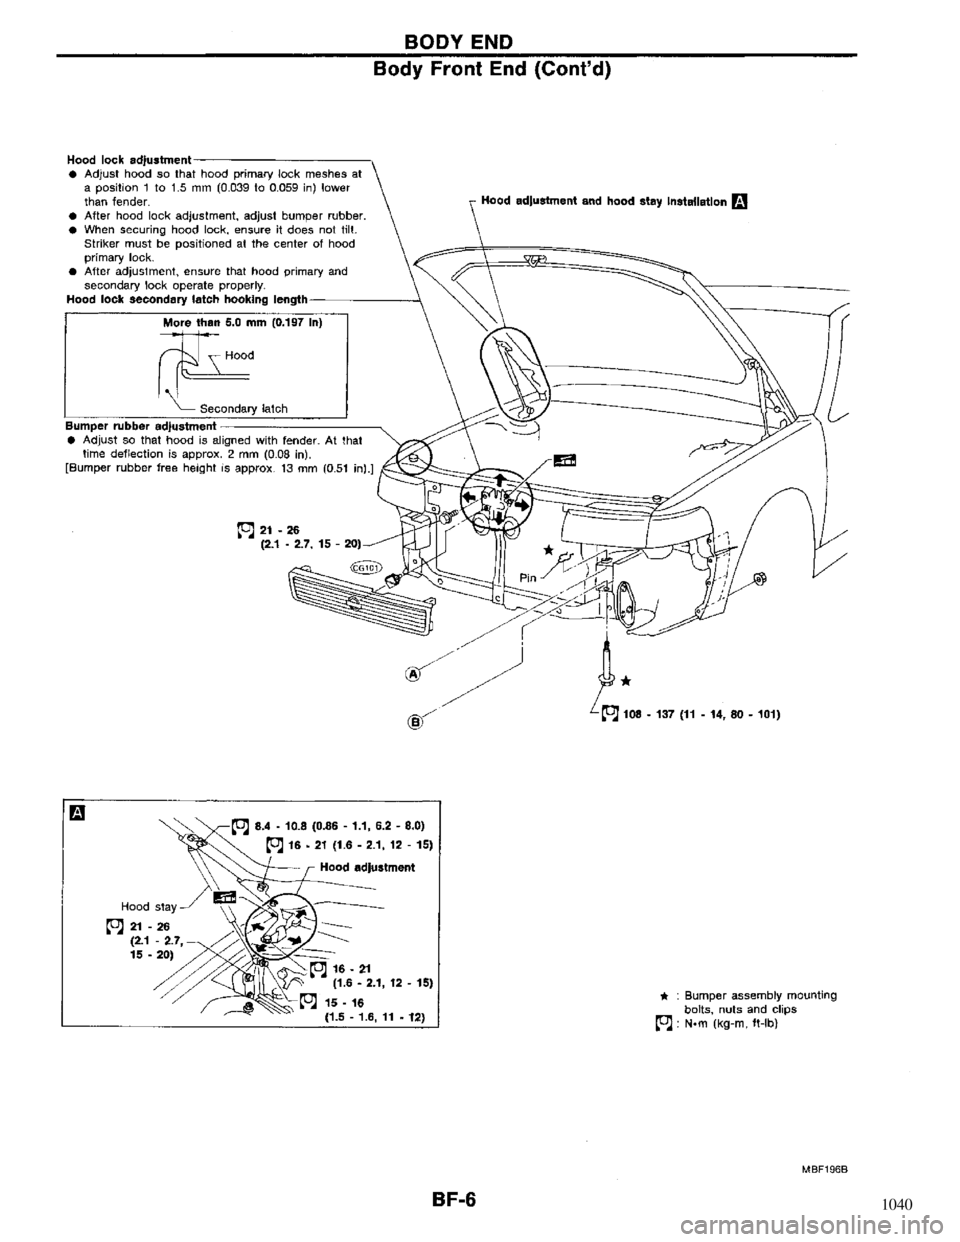 NISSAN MAXIMA 1994 A32 / 4.G Body Workshop Manual, Page 6